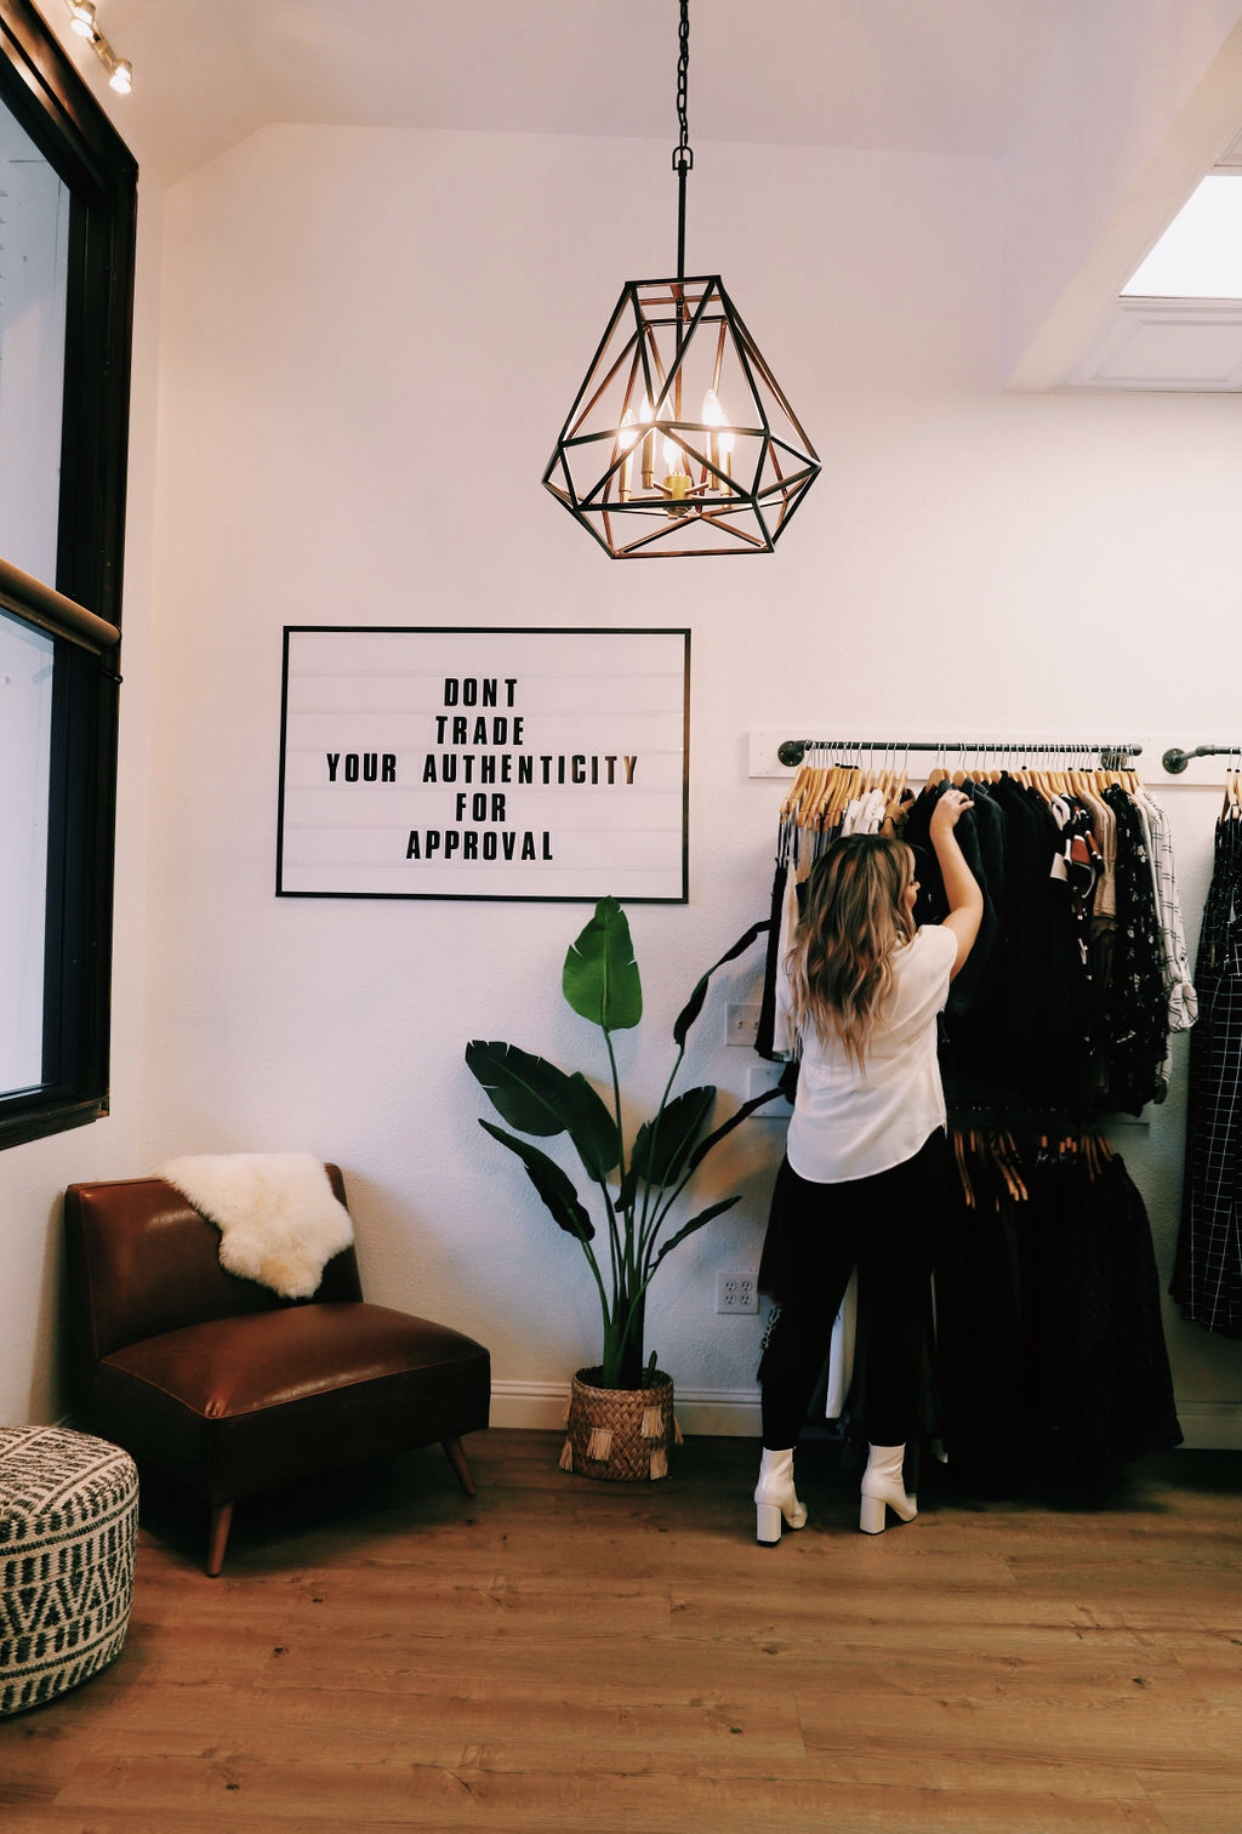 Visit our Roseville, California shop to see our hand-selected curation of size-inclusive women's clothing in retro grunge vintage boho fashion styles